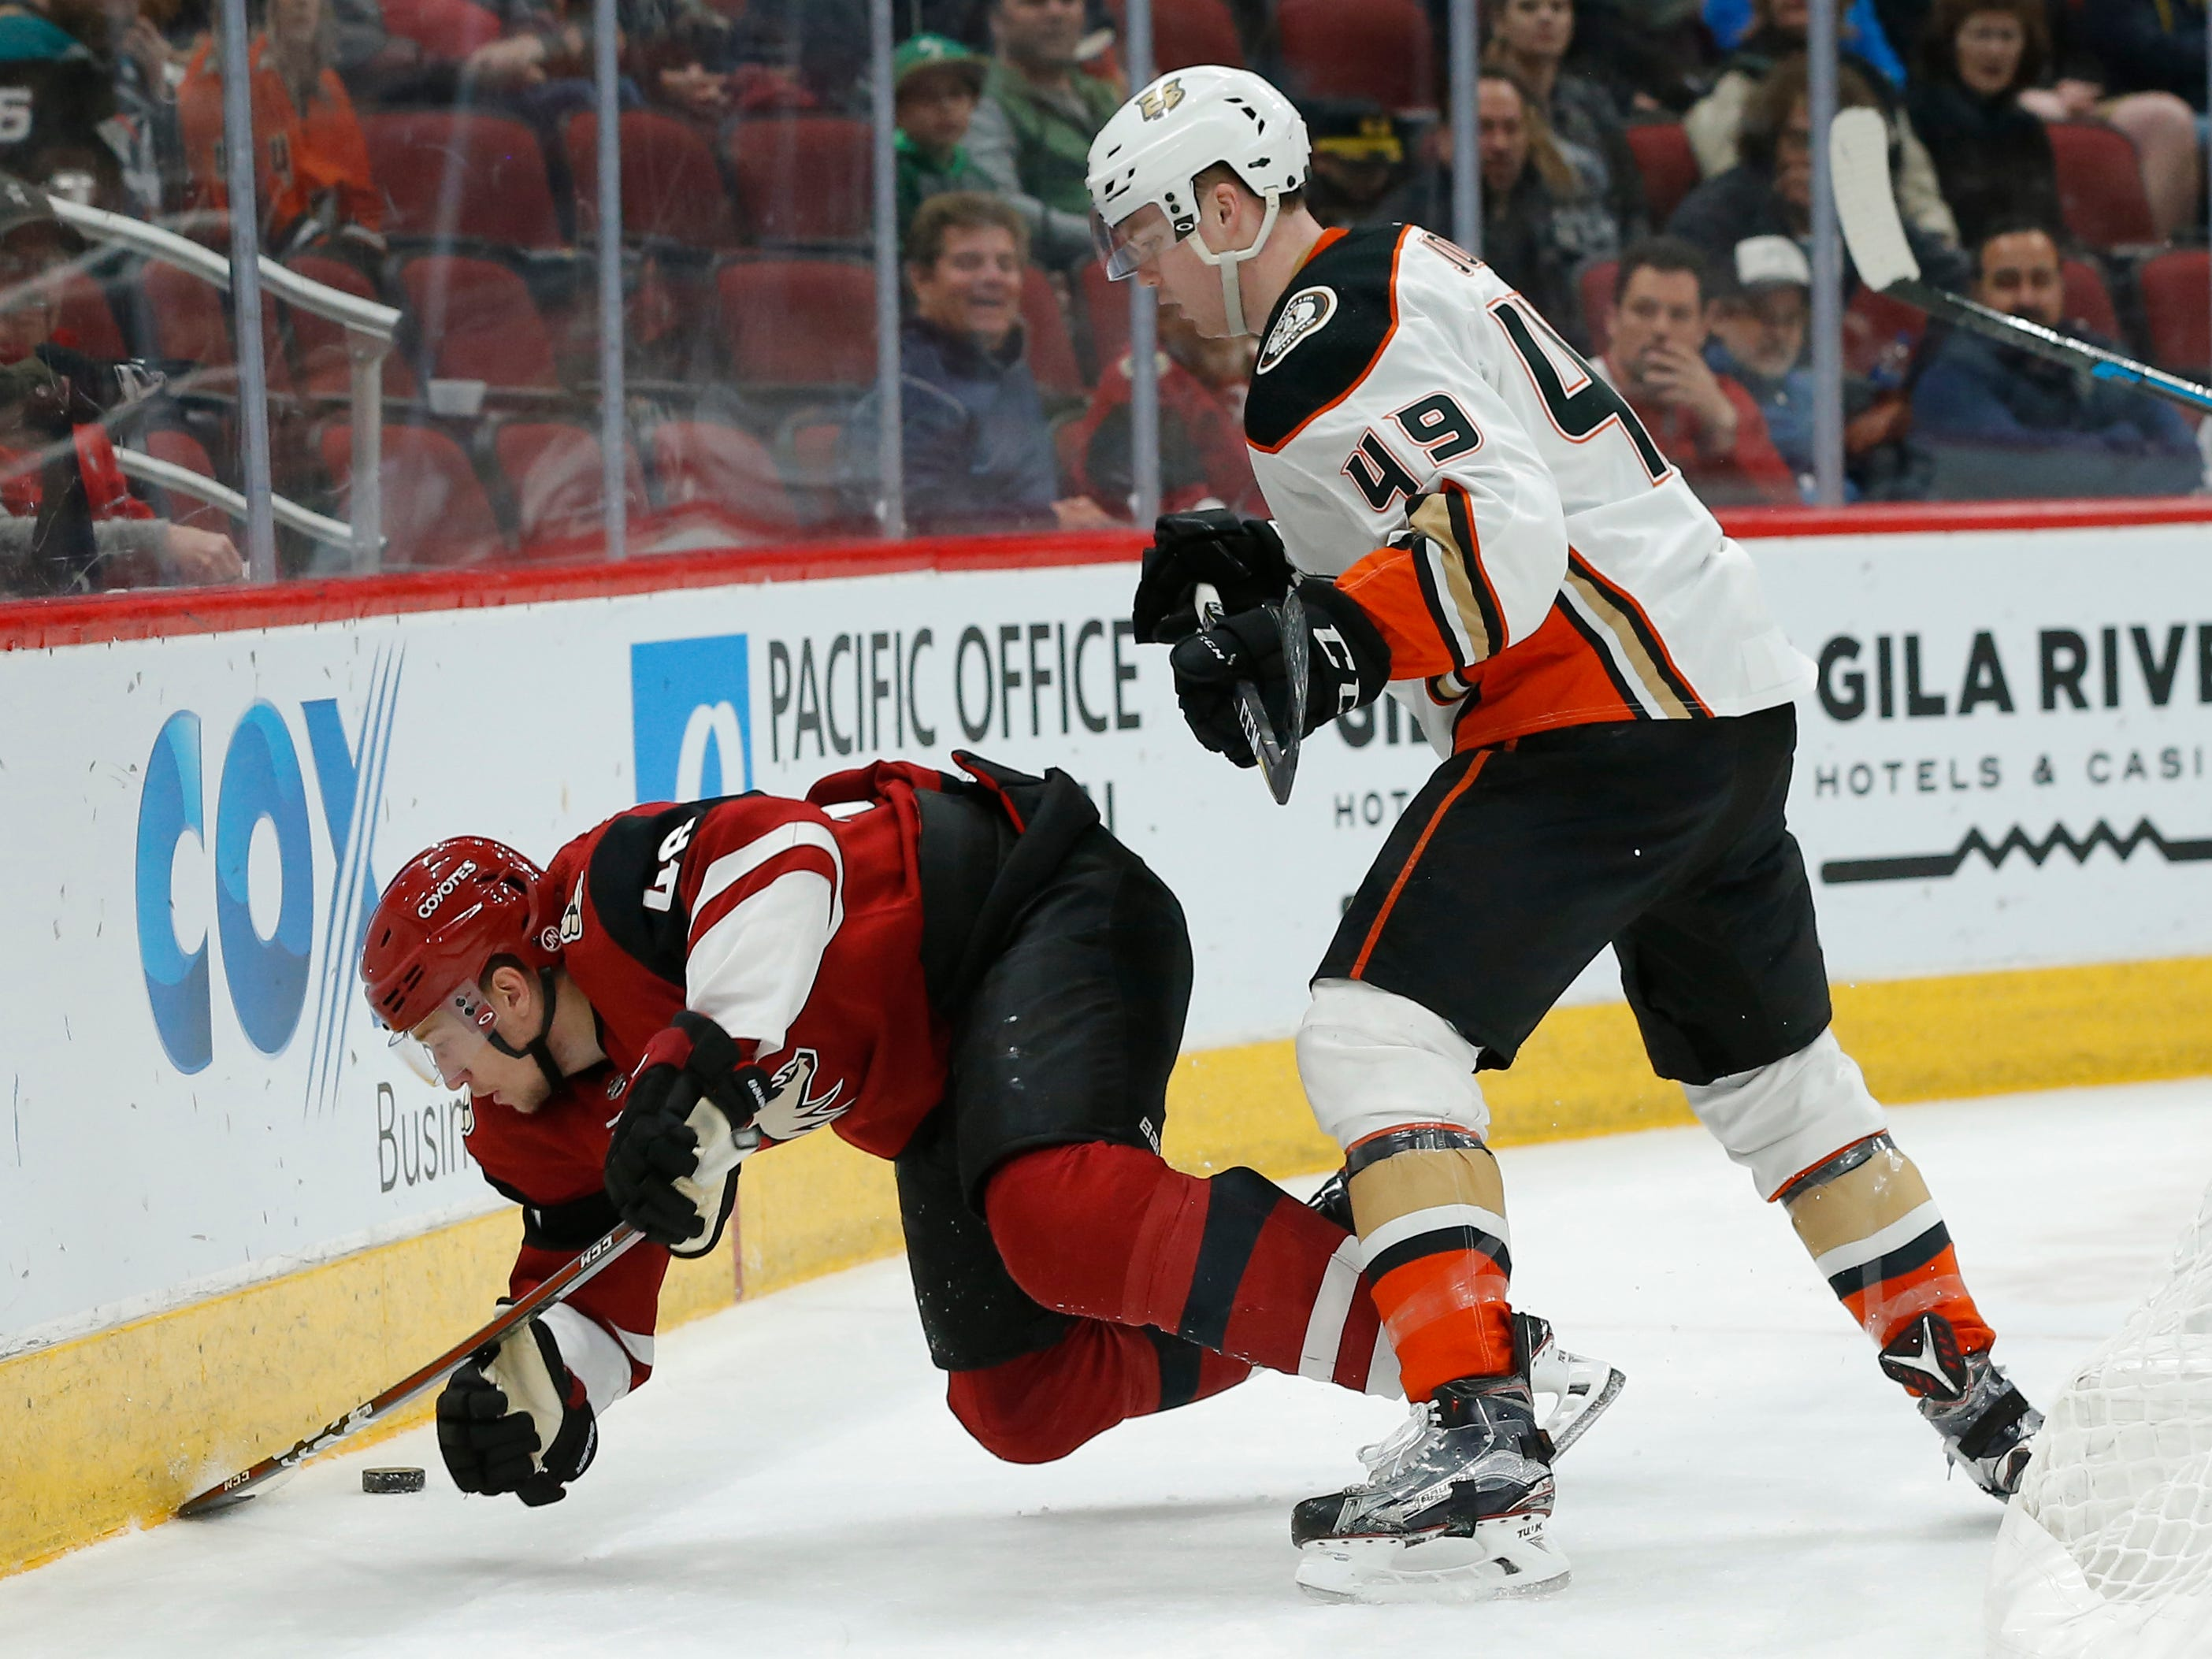 Anaheim Ducks left wing Max Jones (49) checks Arizona Coyotes defenseman Ilya Lyubushkin to the ice in the first period during an NHL hockey game, Thursday, March 14, 2019, in Glendale, Ariz.